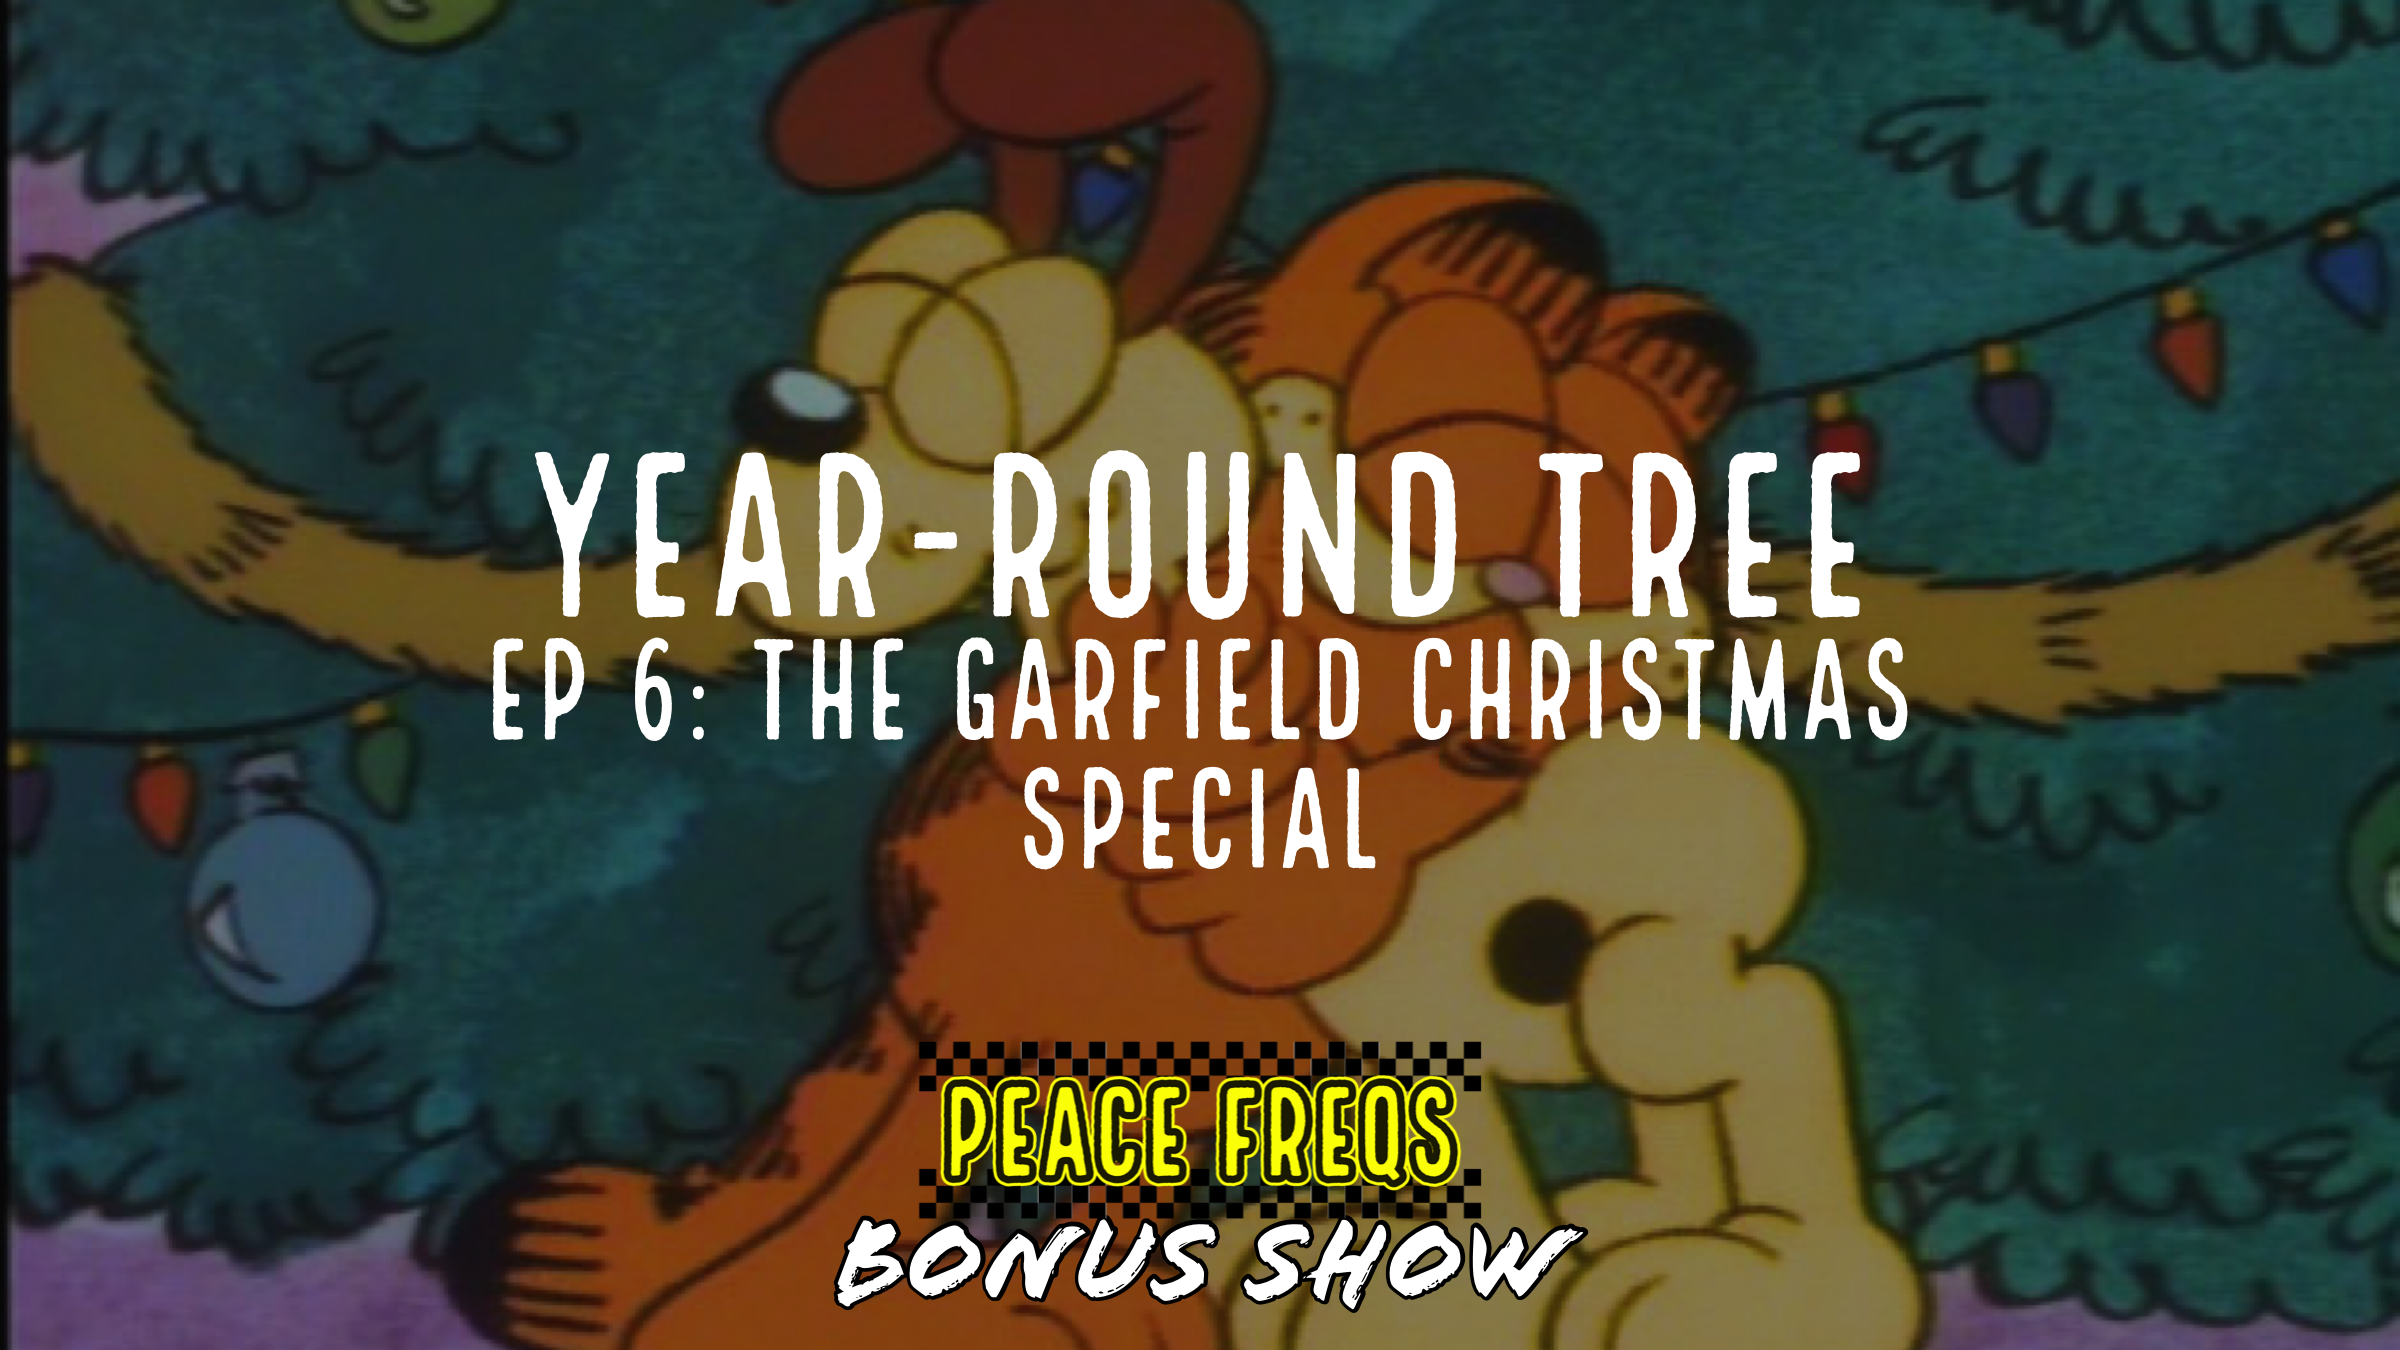 The Garfield Christmas Special Review – Year-Round Tree 006